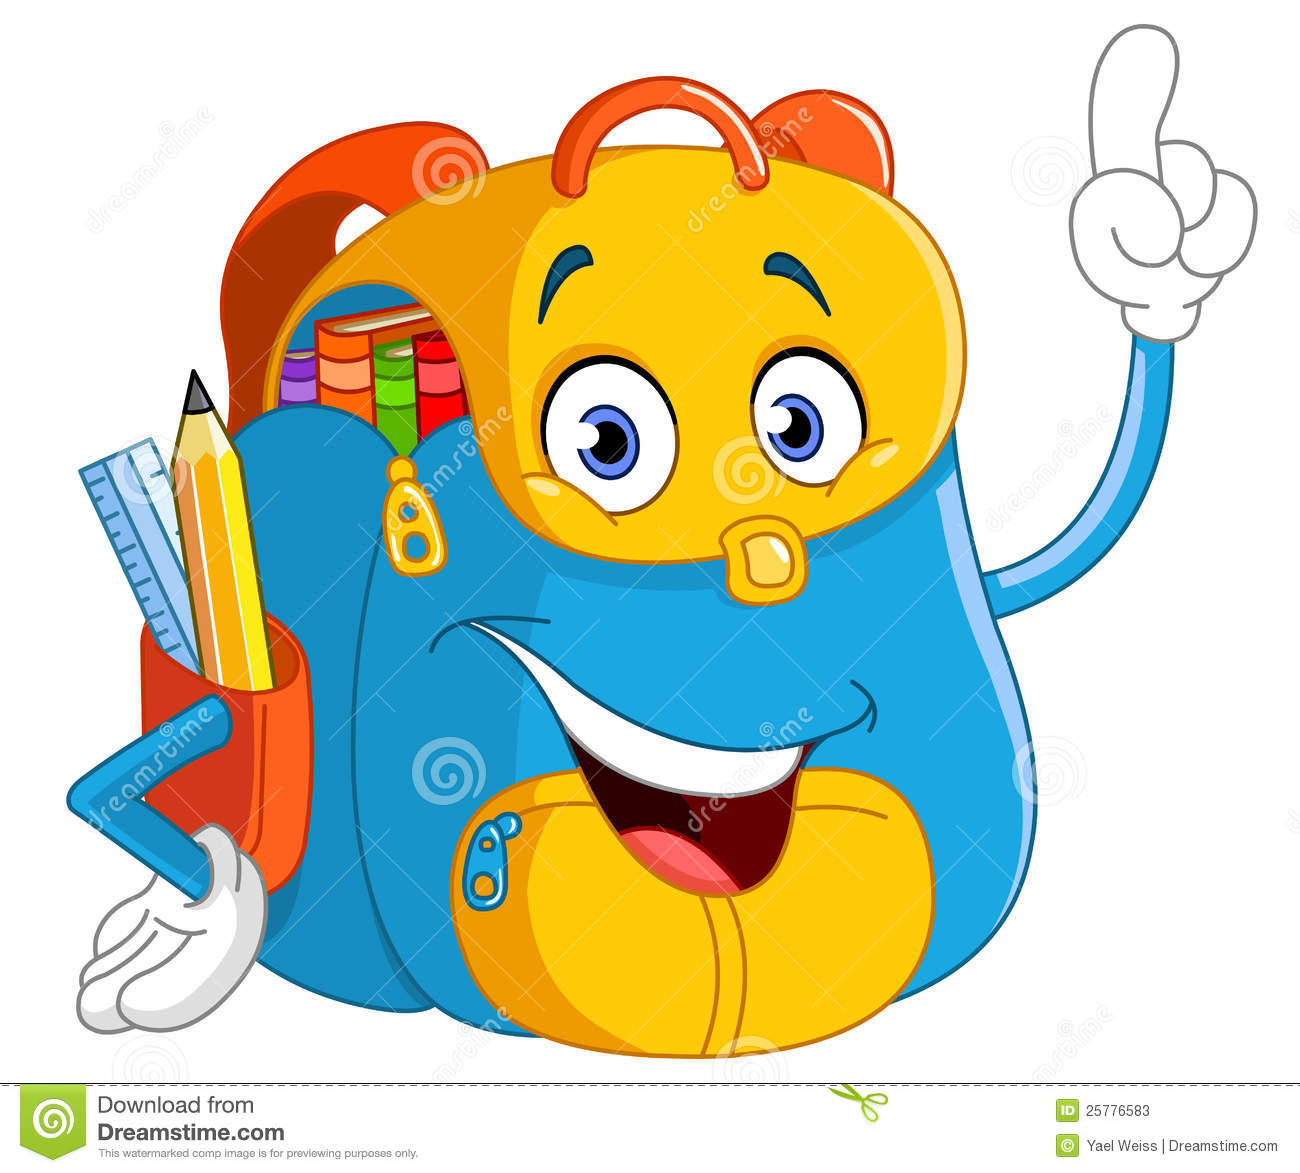 Sac dos de dessin anim photos stock image 25776583 - Dessin avec emoticone ...